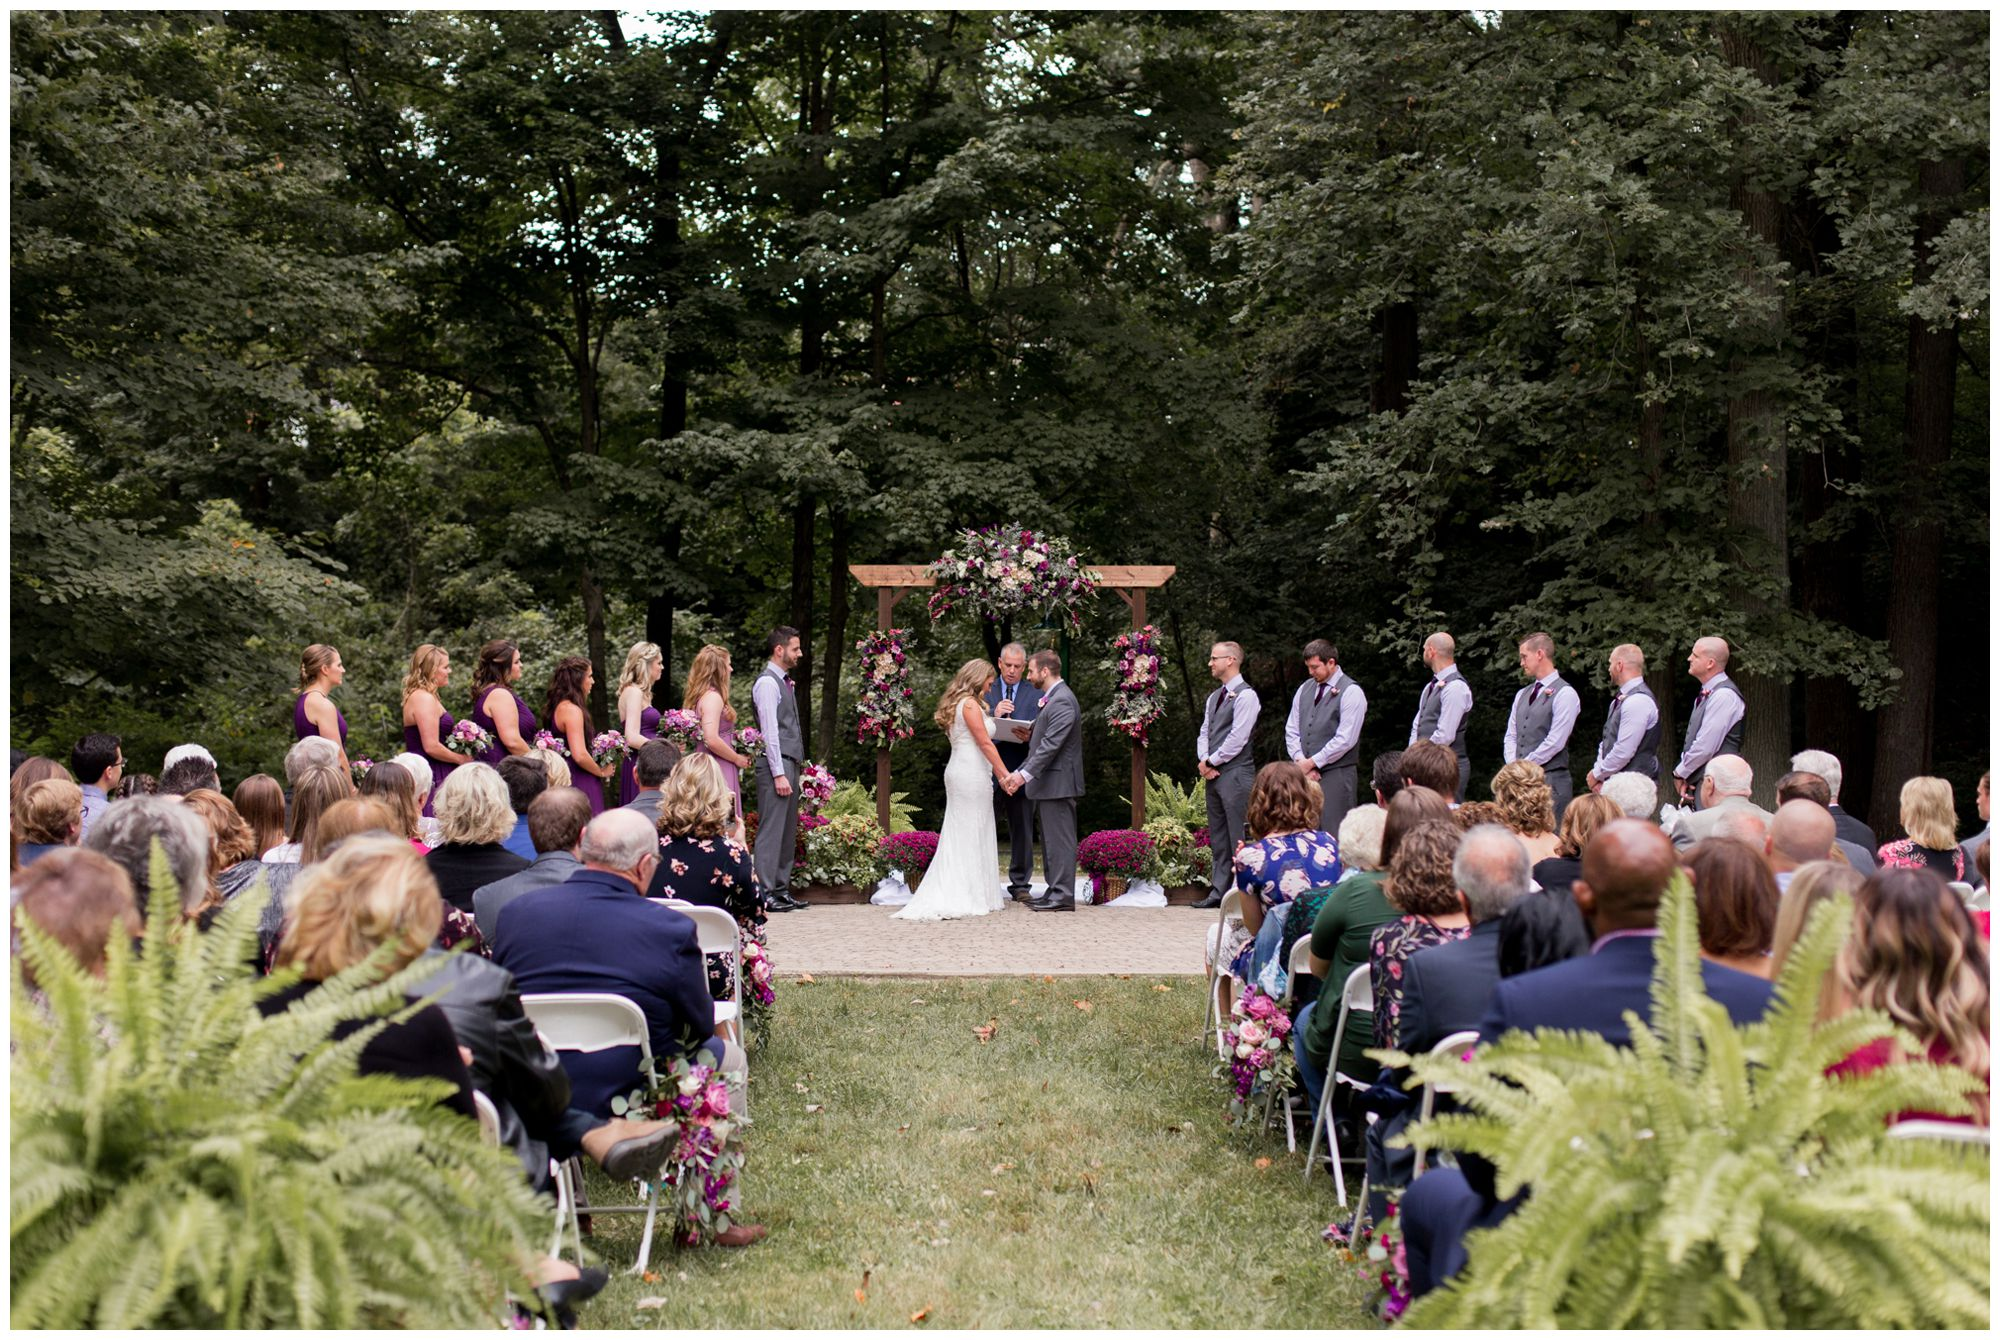 Wabash Indiana wedding ceremony at Charley Creek Gardens